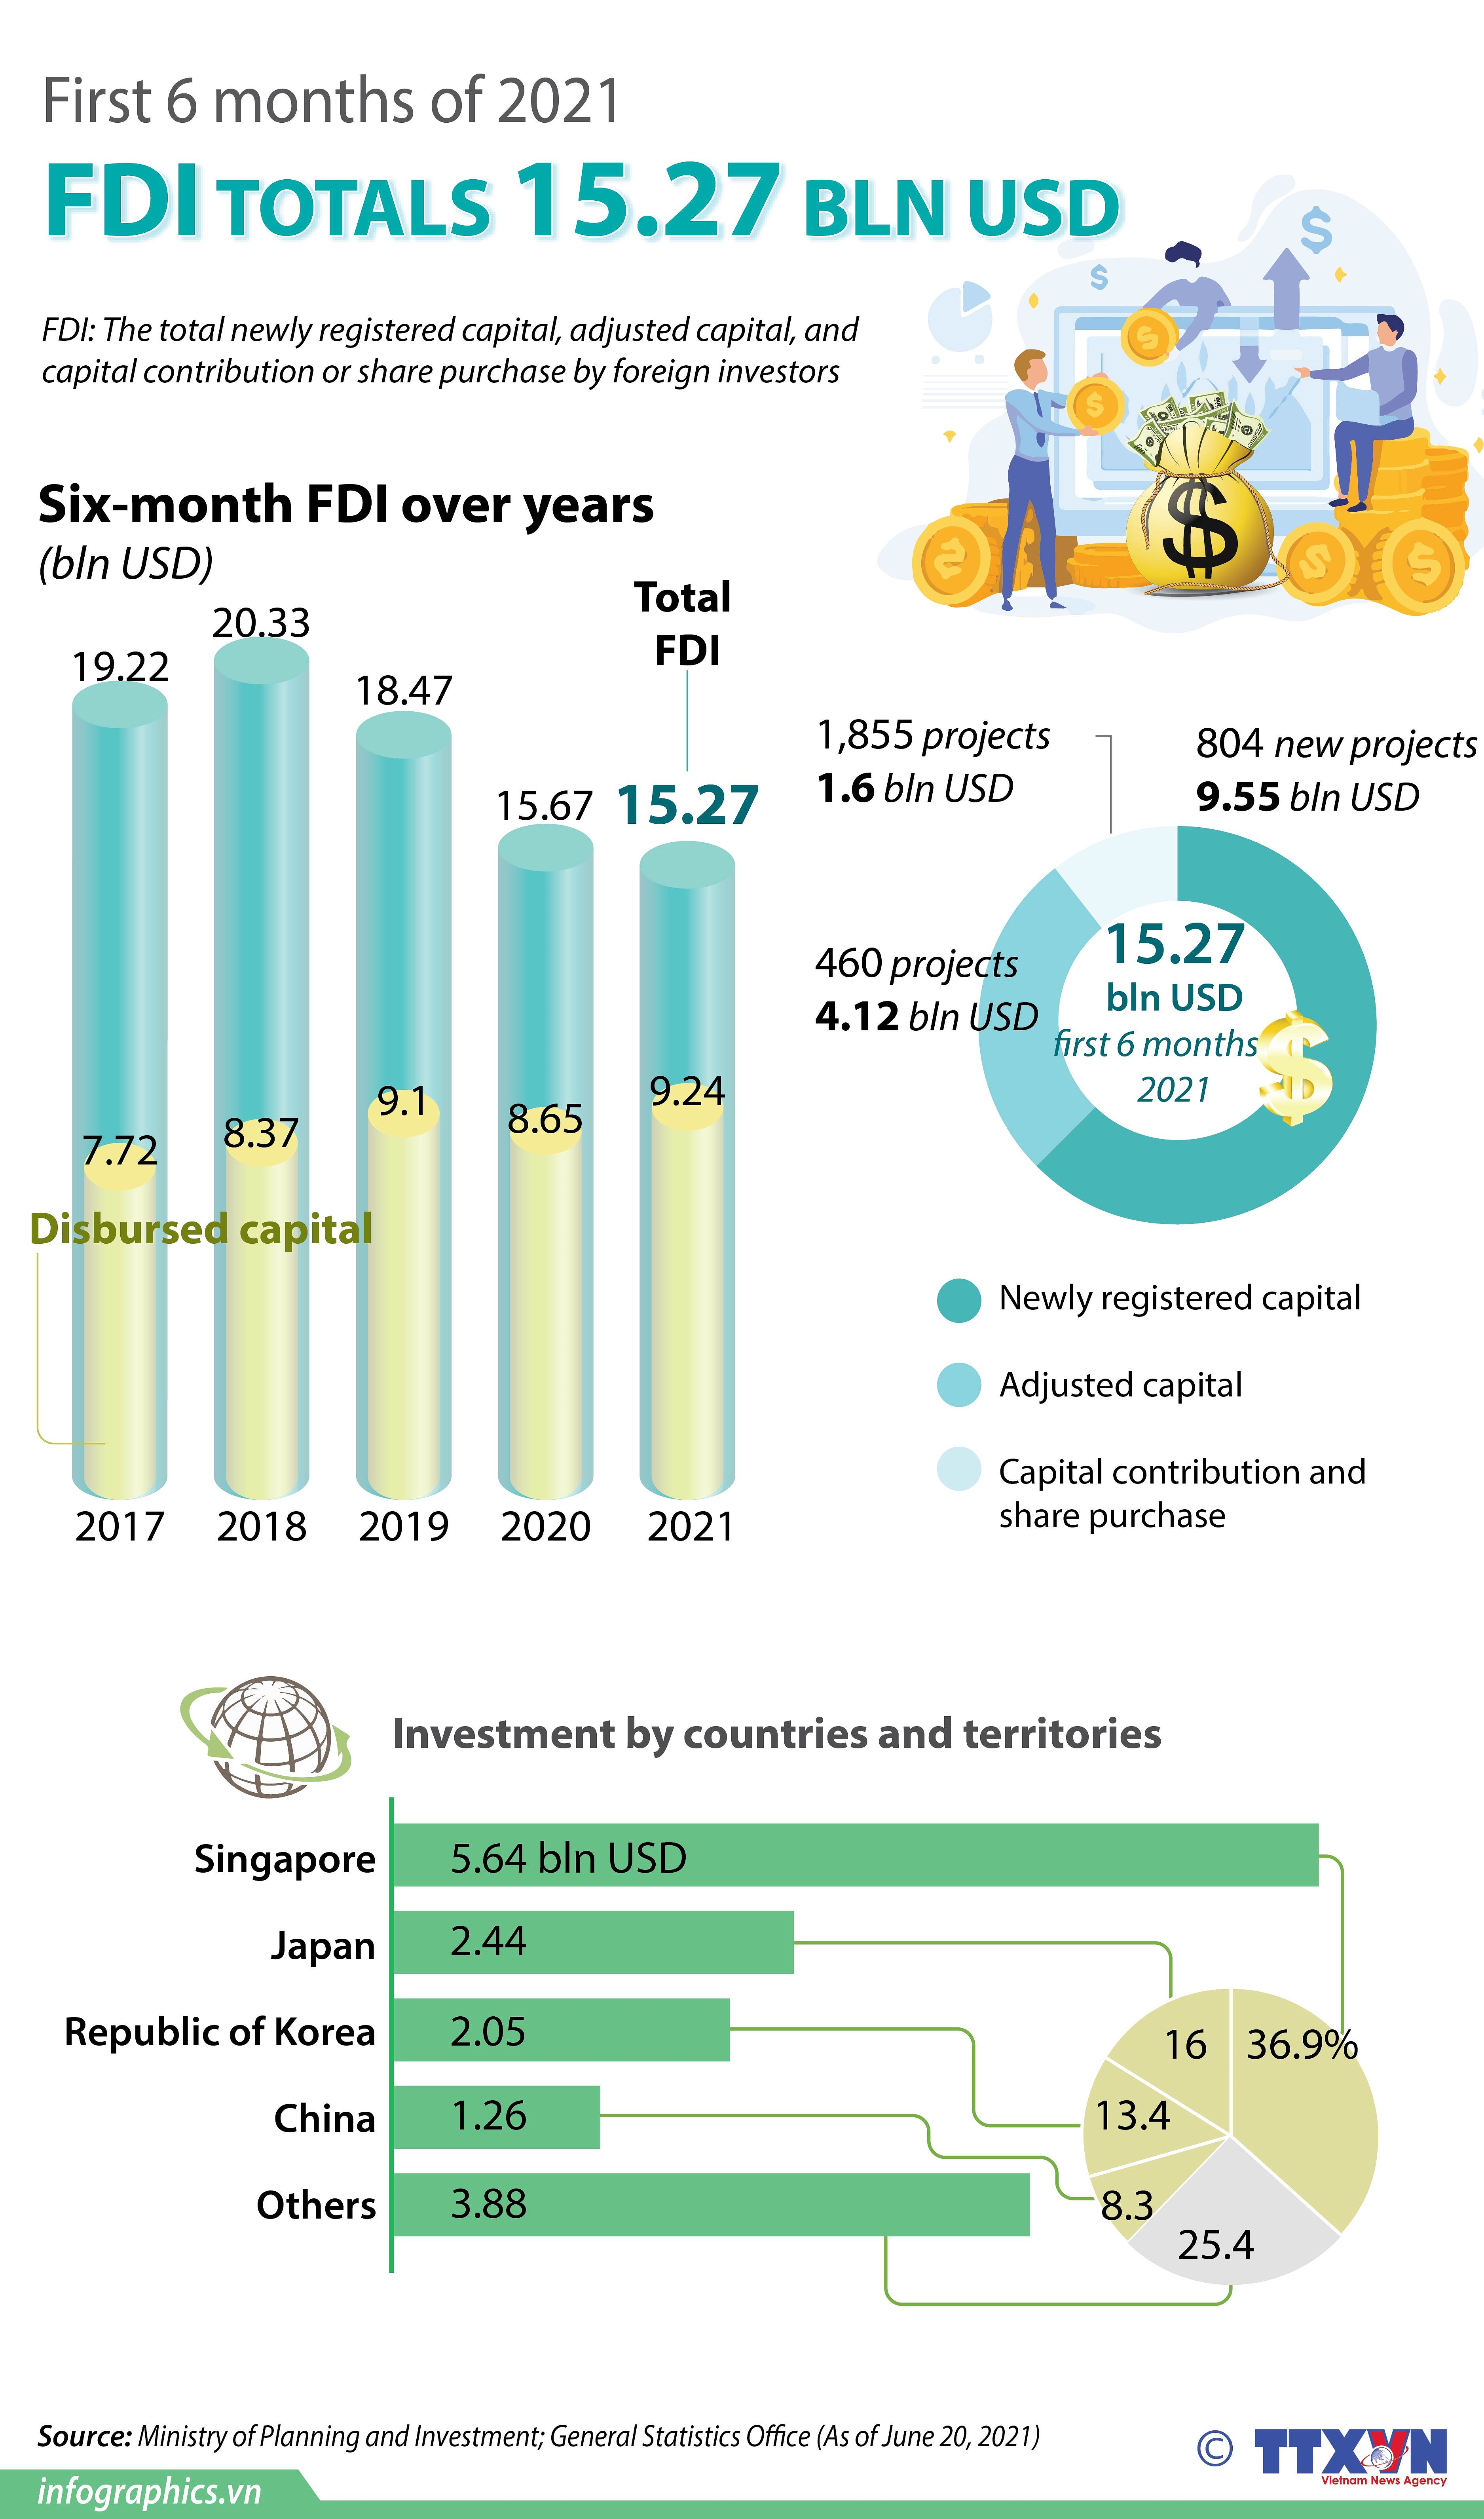 Vietnam attracts over 15 billion USD of FDI in six months hinh anh 1